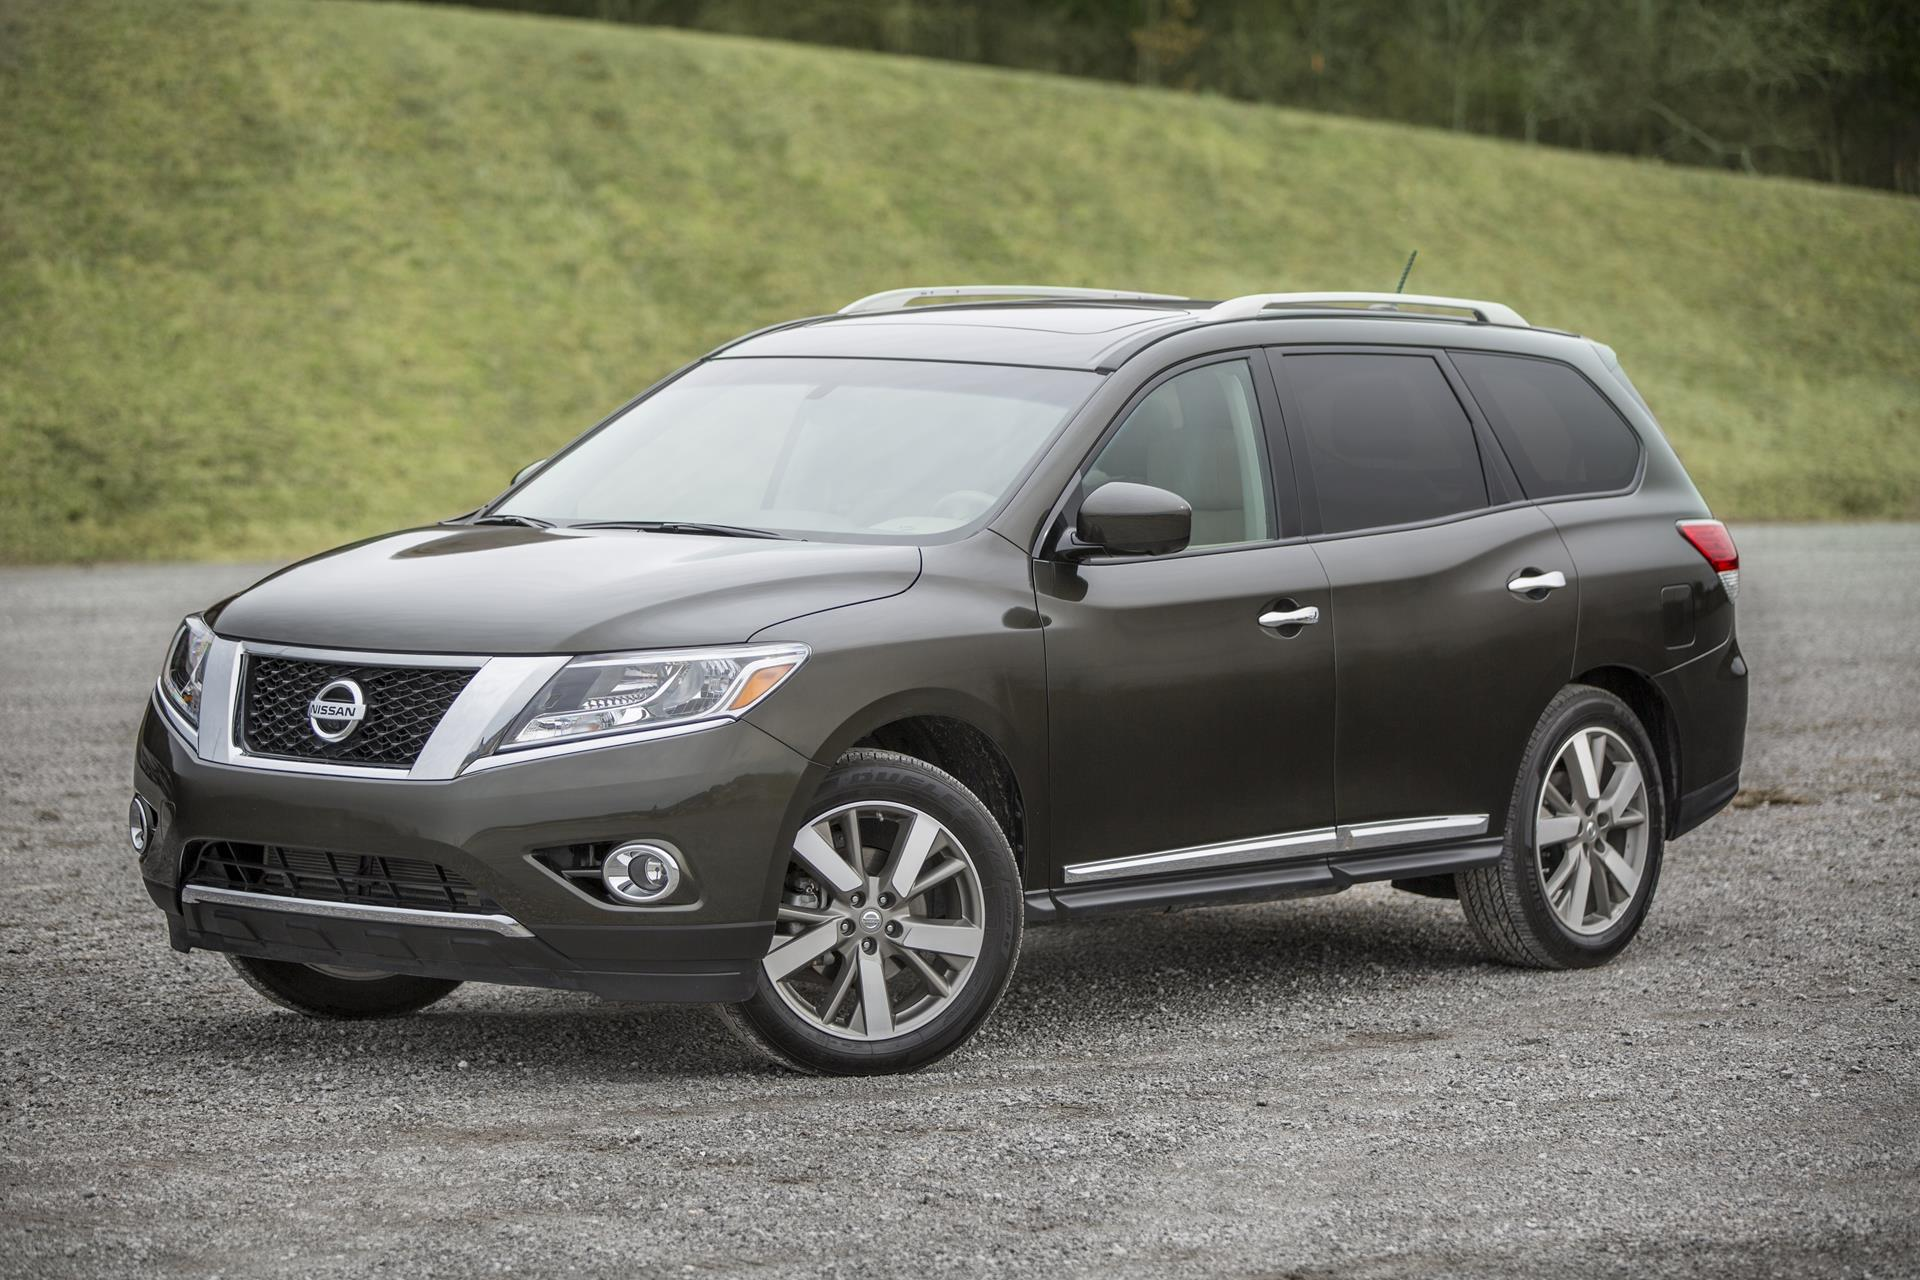 2016 nissan pathfinder. Black Bedroom Furniture Sets. Home Design Ideas